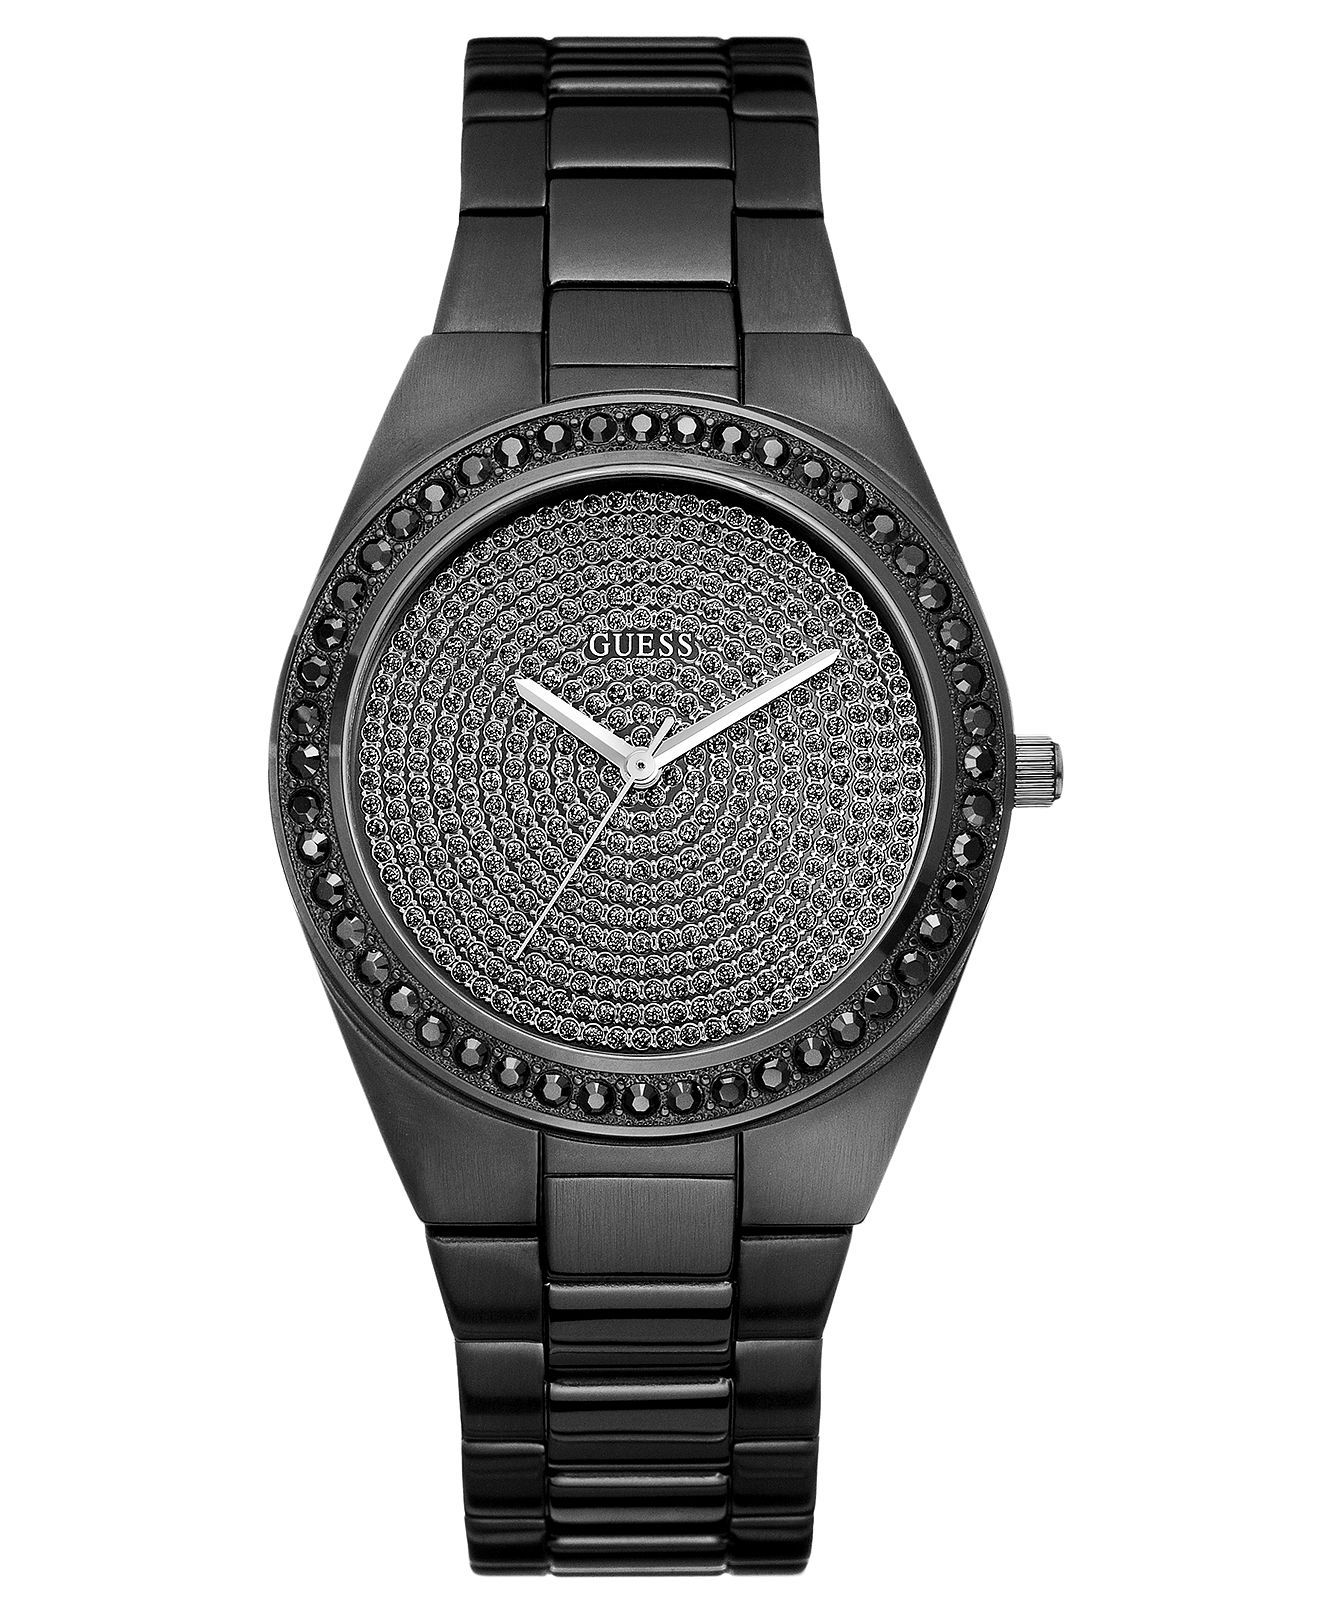 213768743 GUESS Watch, Women's Black Ion Plated Stainless Steel Bracelet 39mm  U11055L3 - All Watches - Jewelry & Watches - Macy's